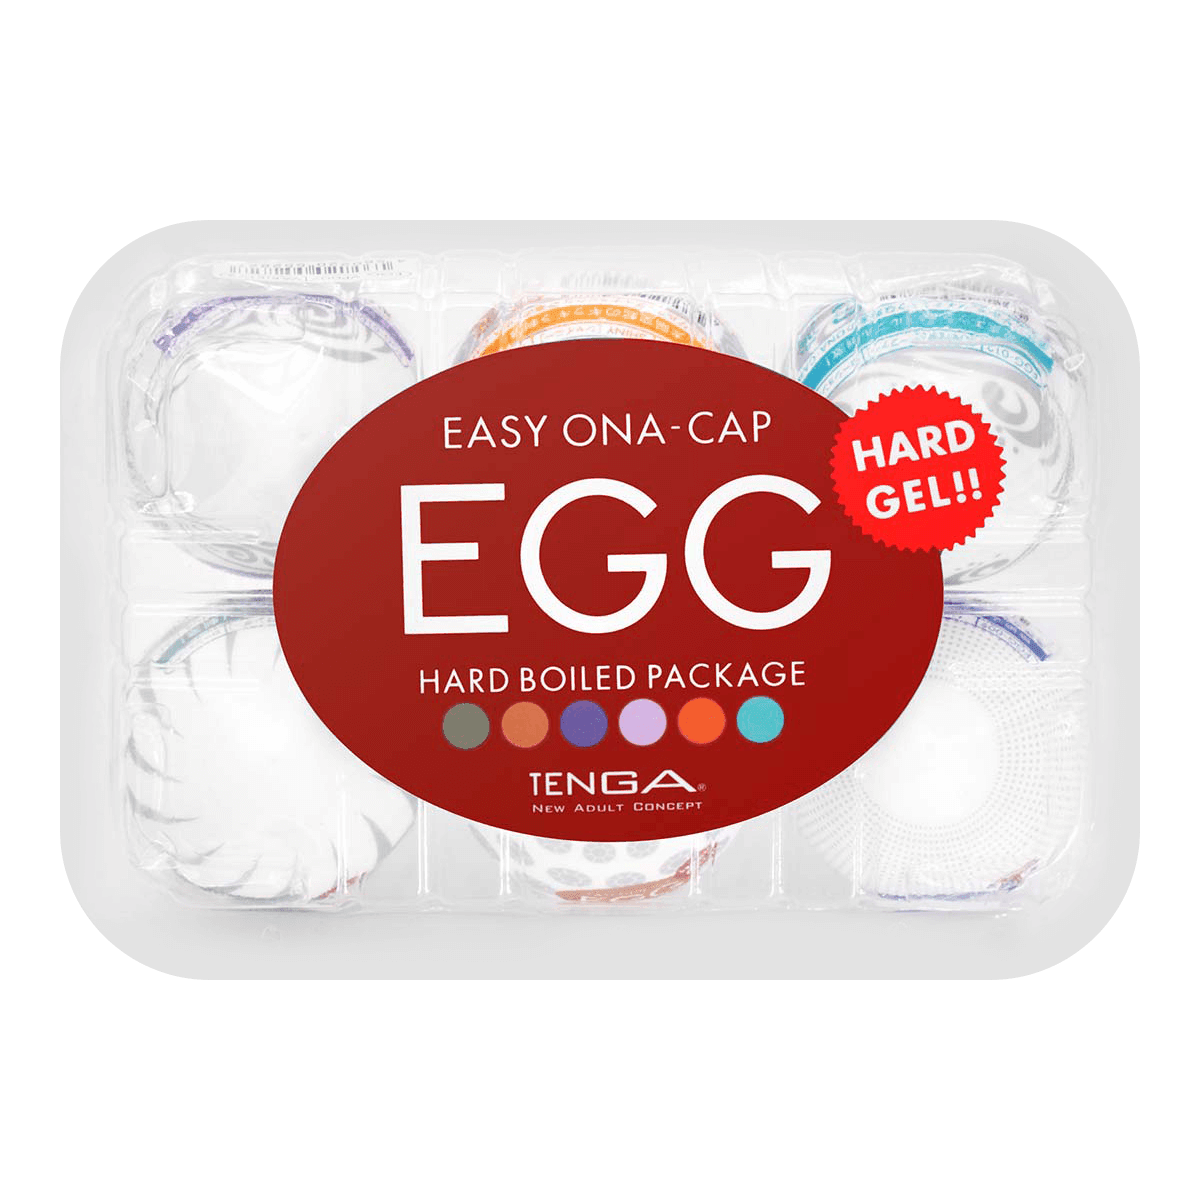 Yamibuycom International Programmers Day Tenga Play Gel Rich Aqua Egg Variety Pack Hard Boiled Edition